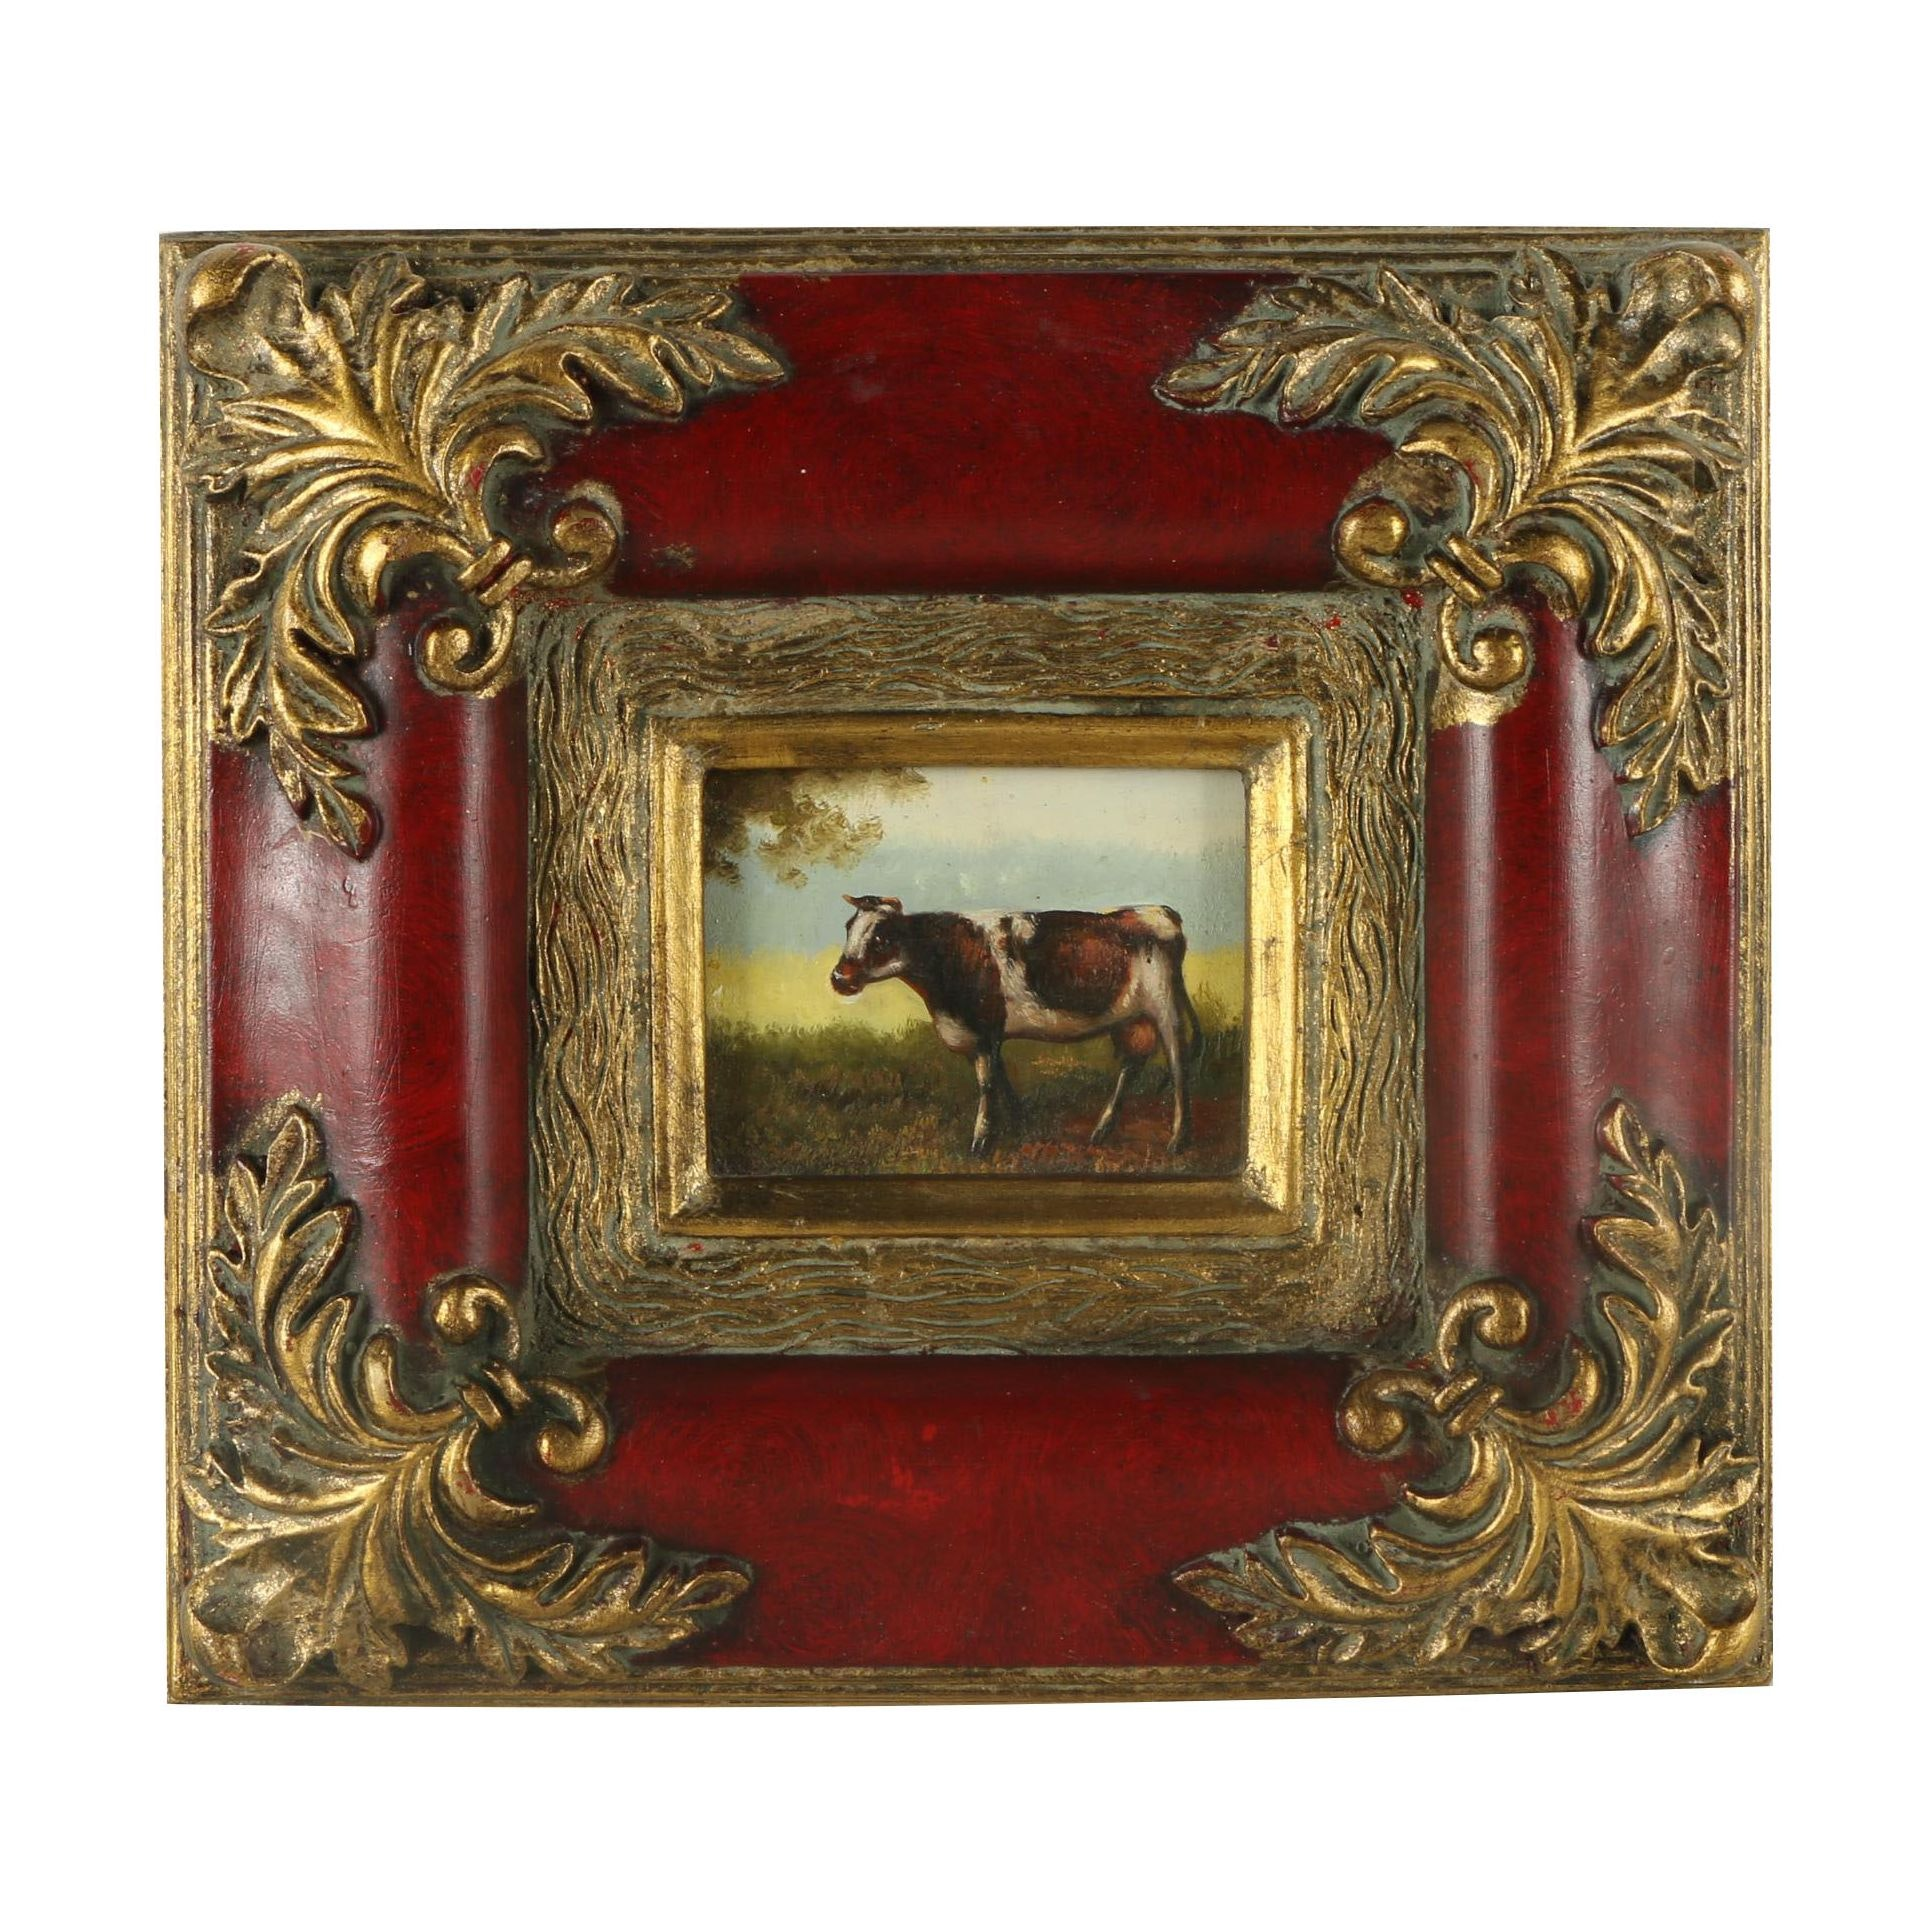 Oil on Panel of Cow in Elaborate Frame